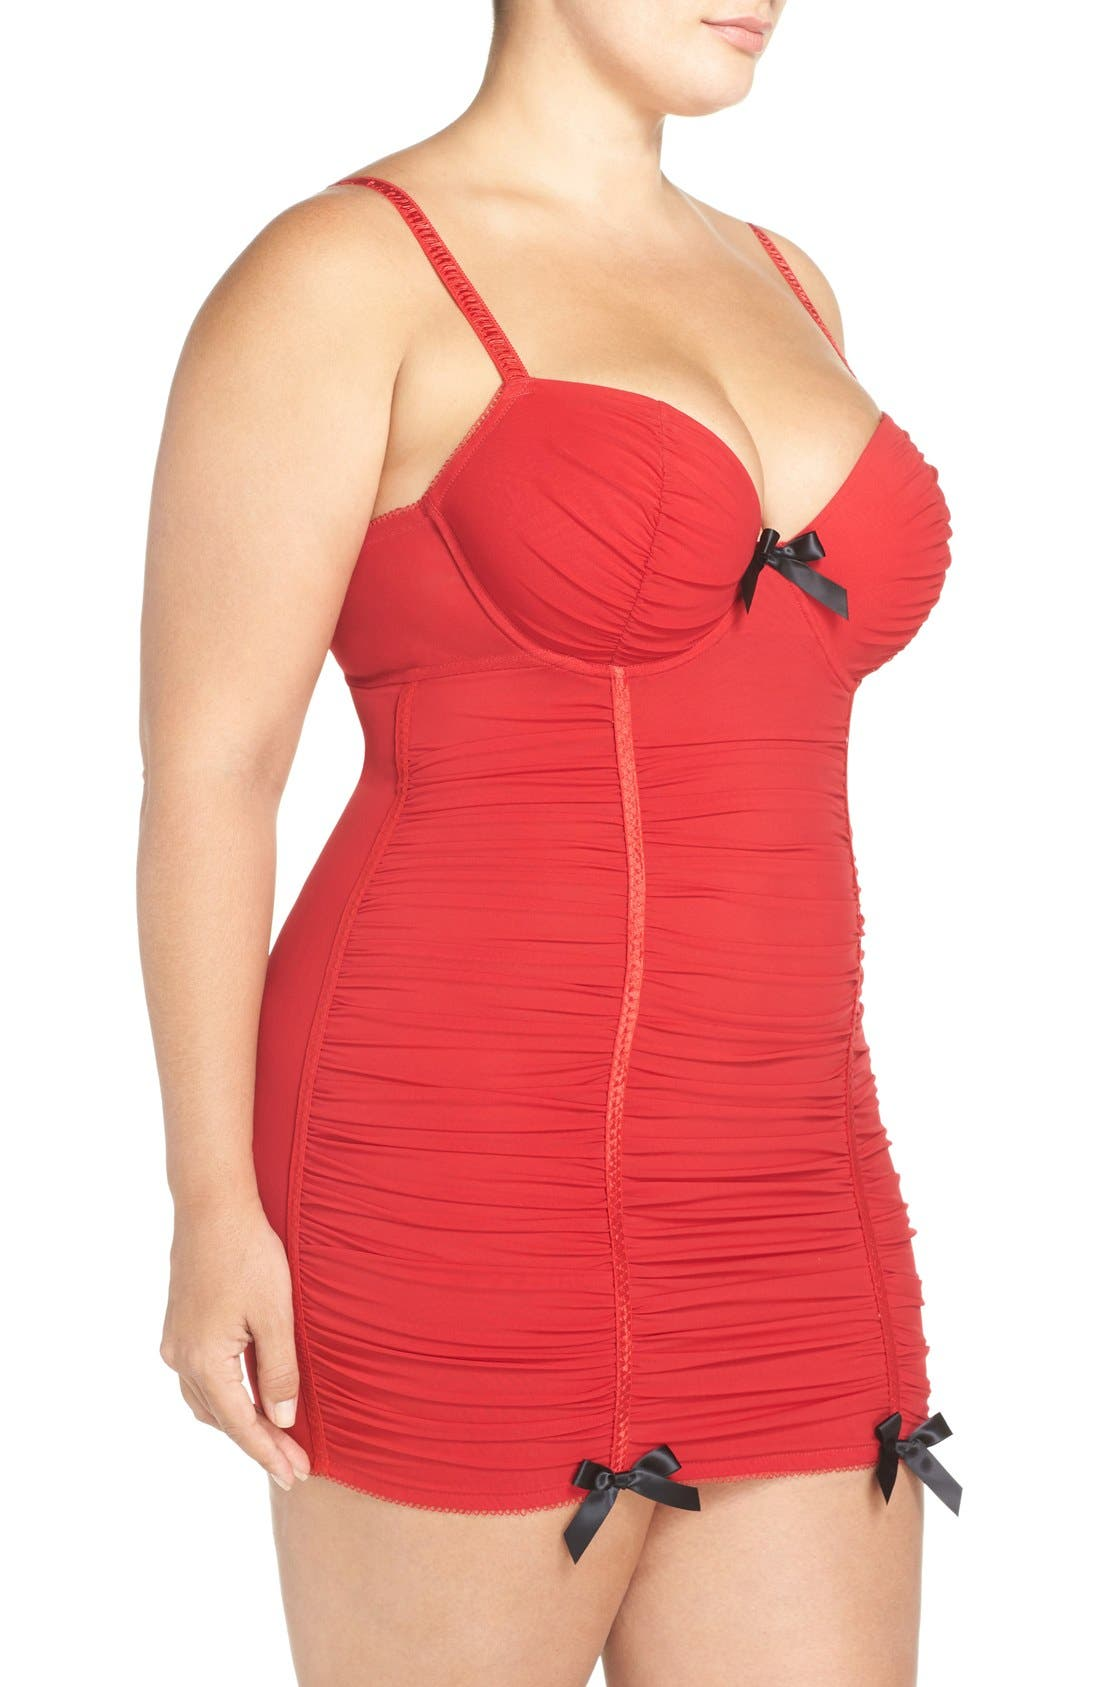 Alternate Image 3  - Black Bow 'Show Off' Ruched Underwire Chemise (Plus Size)